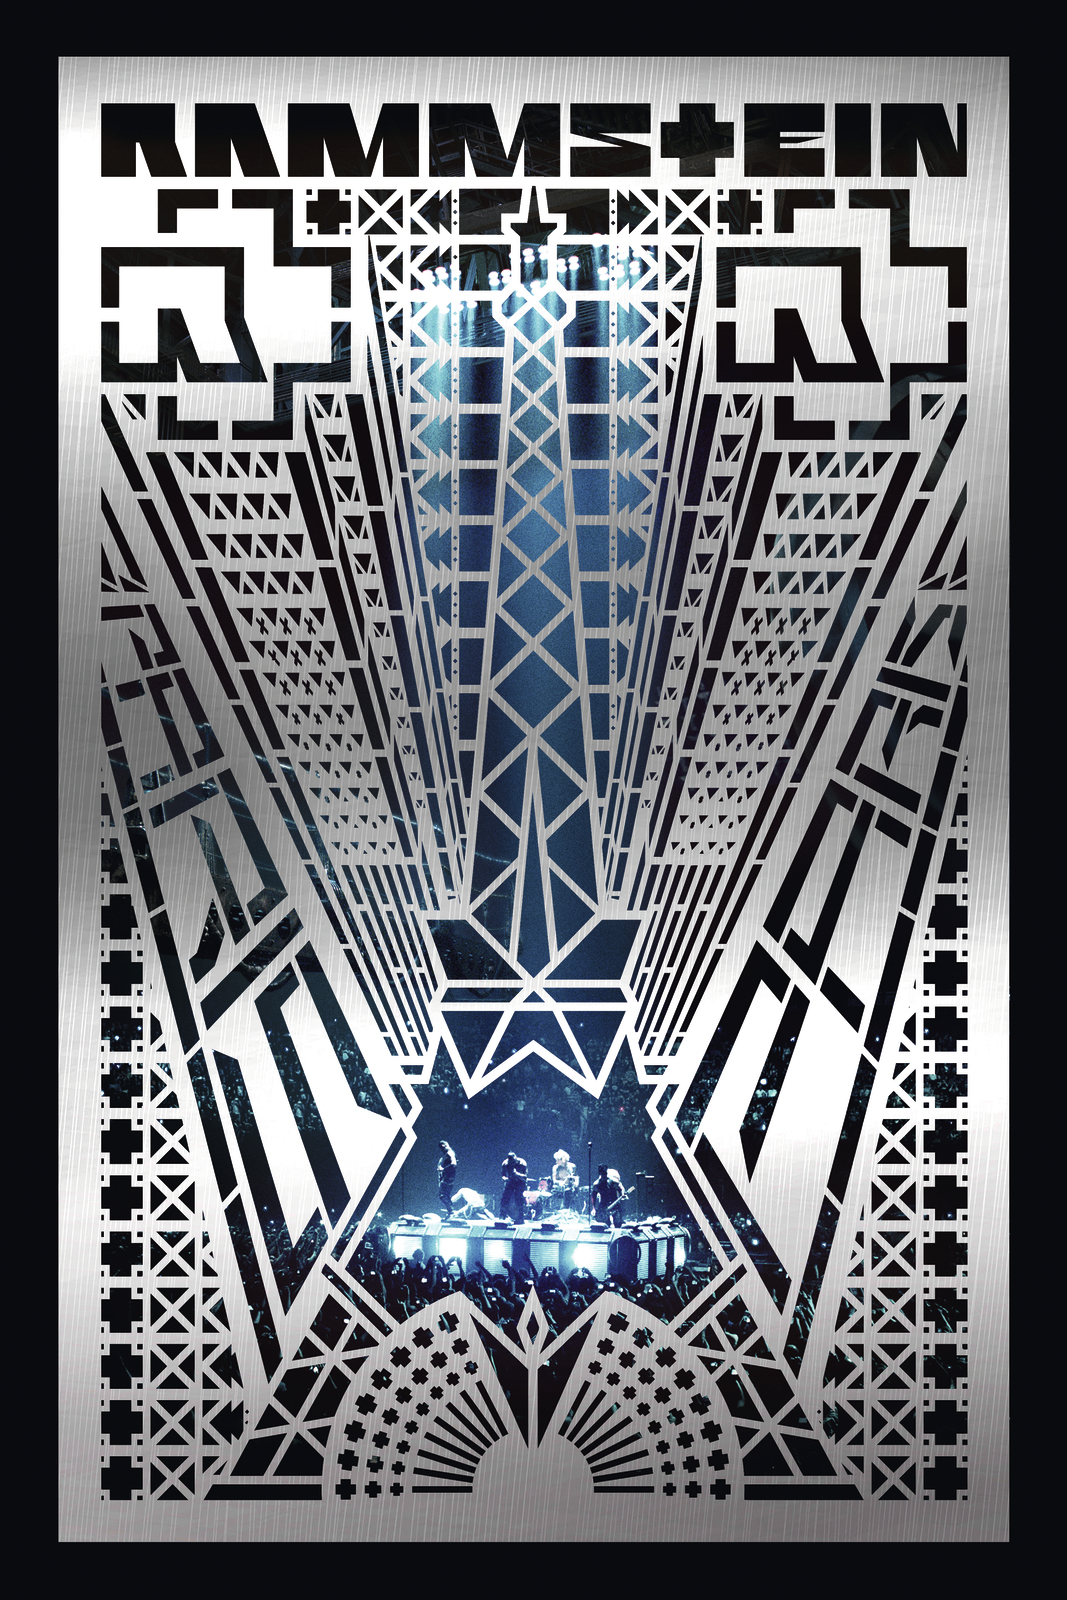 Paris (DVD) on  by Rammstein image